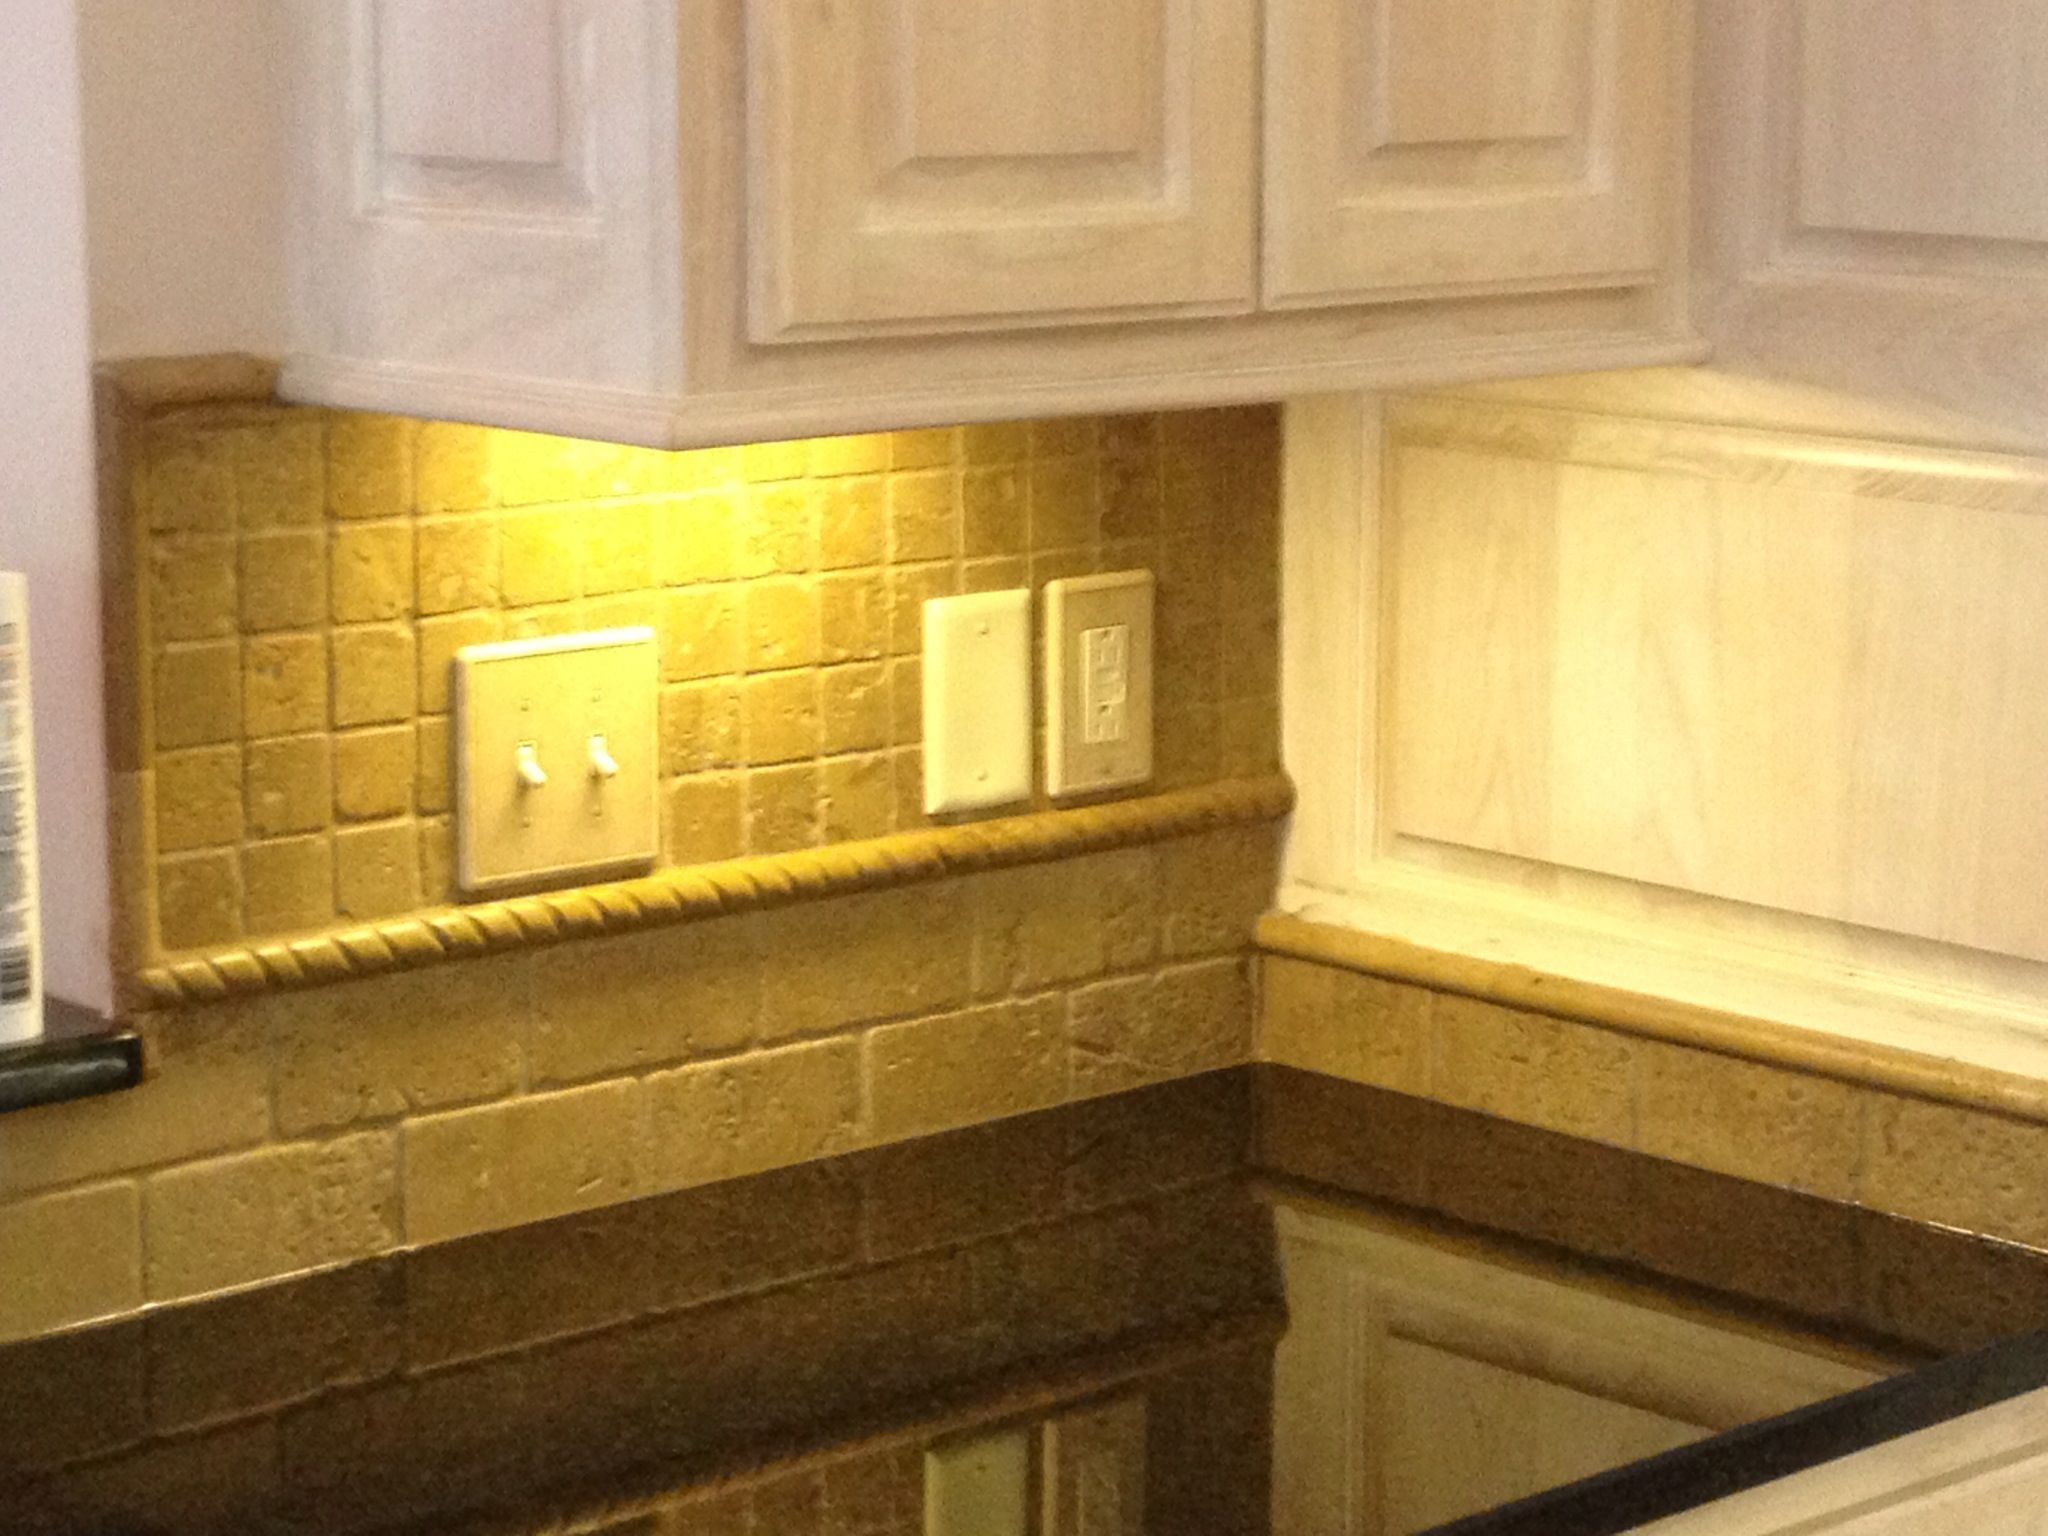 Tumbled Travertine Backsplash Ideas Kitchen Travertine Backsplash Ideas Kitchen Backsplash